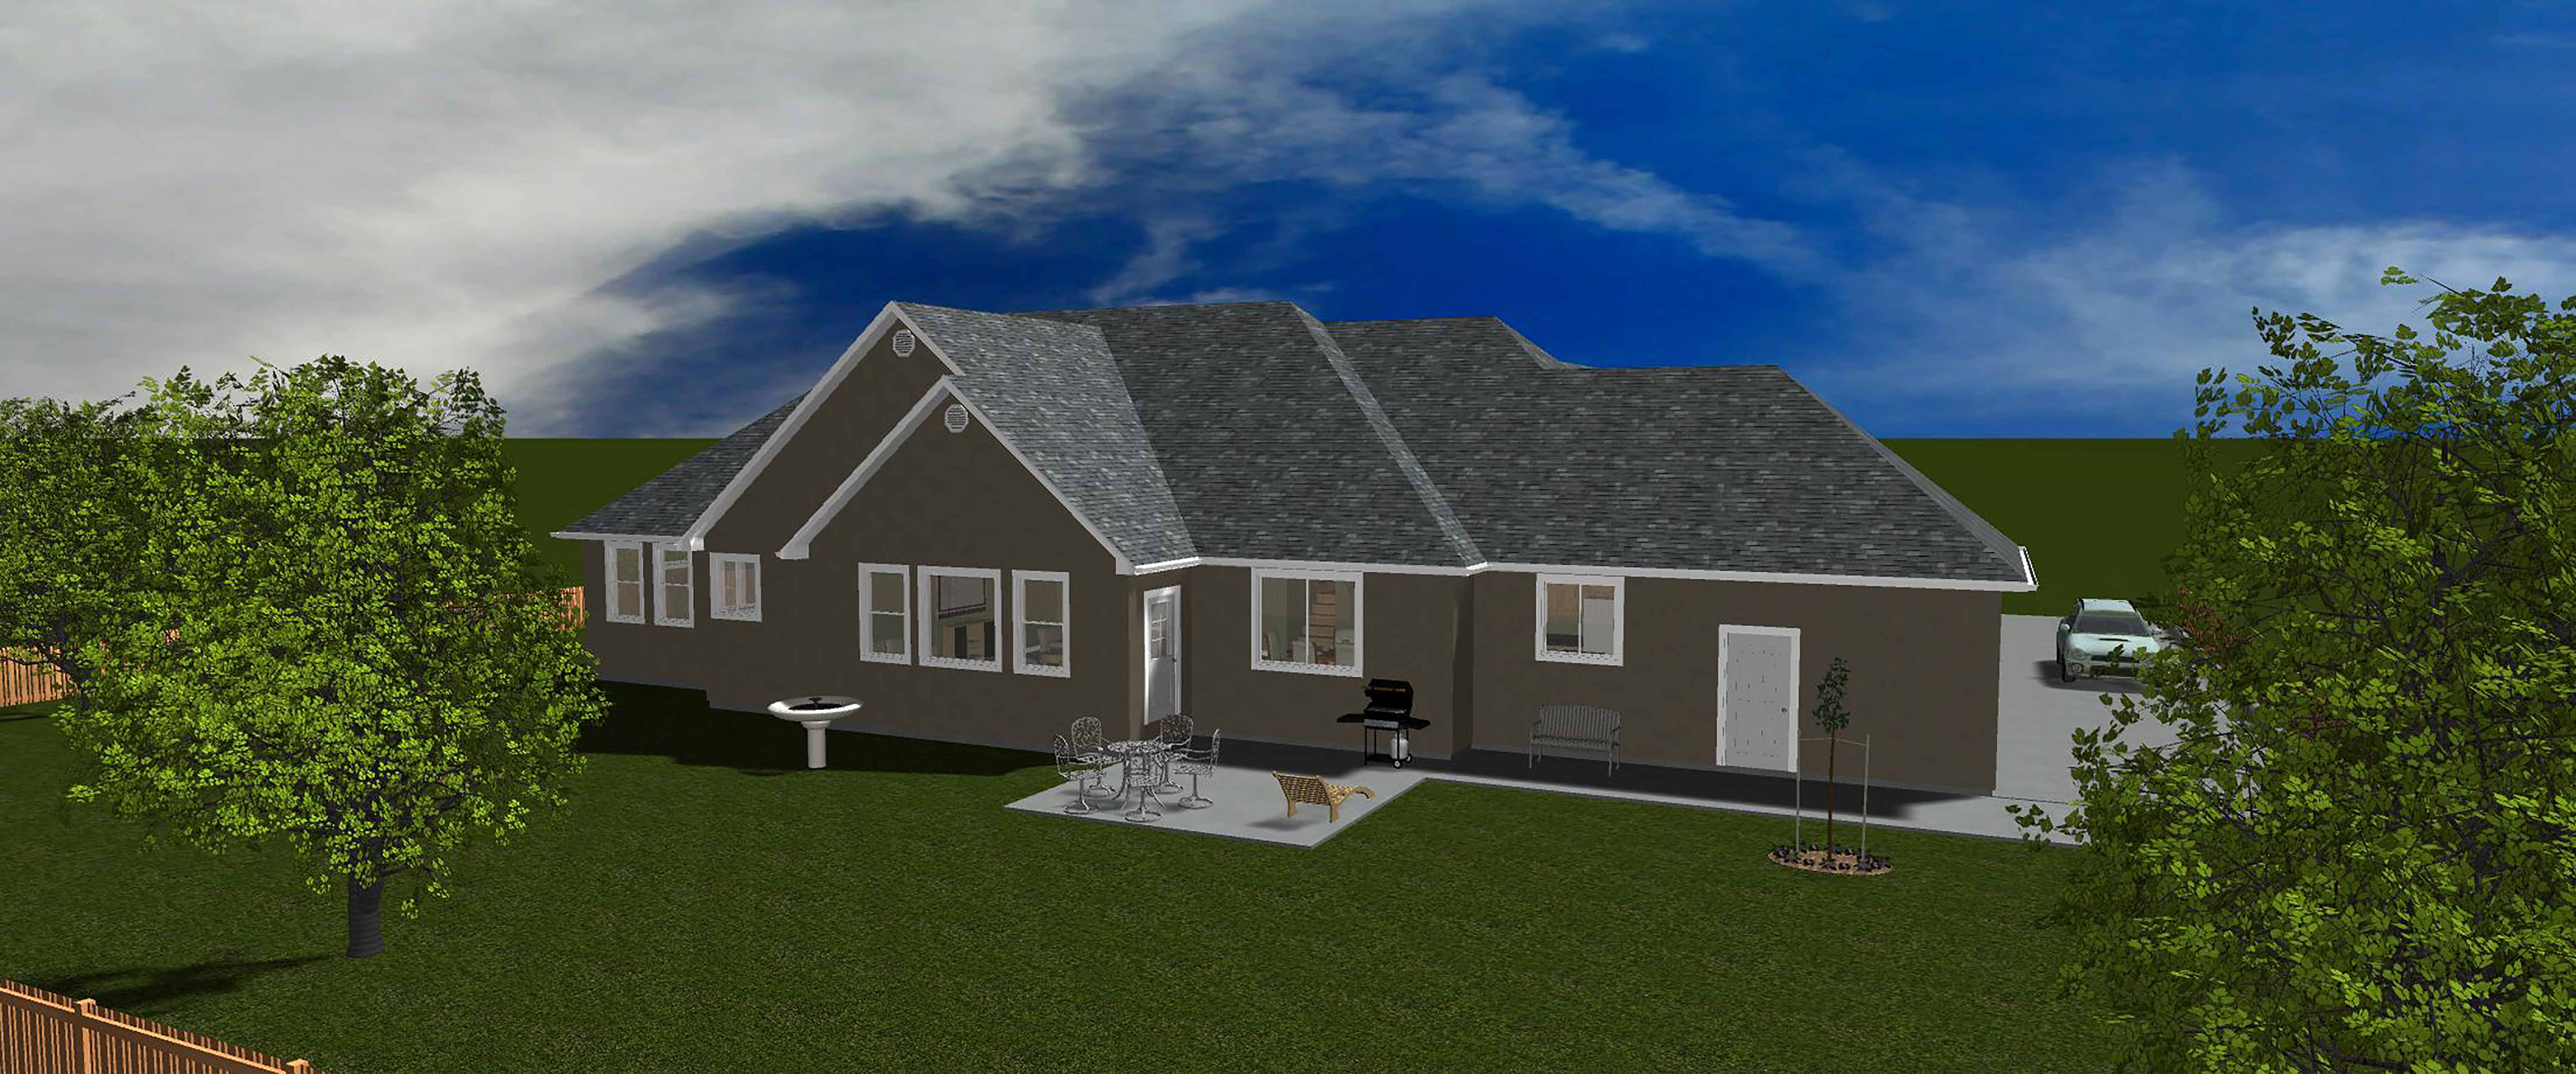 House Plan 187 1031 5 Bdrm 2 576 Sq Ft Traditional Home